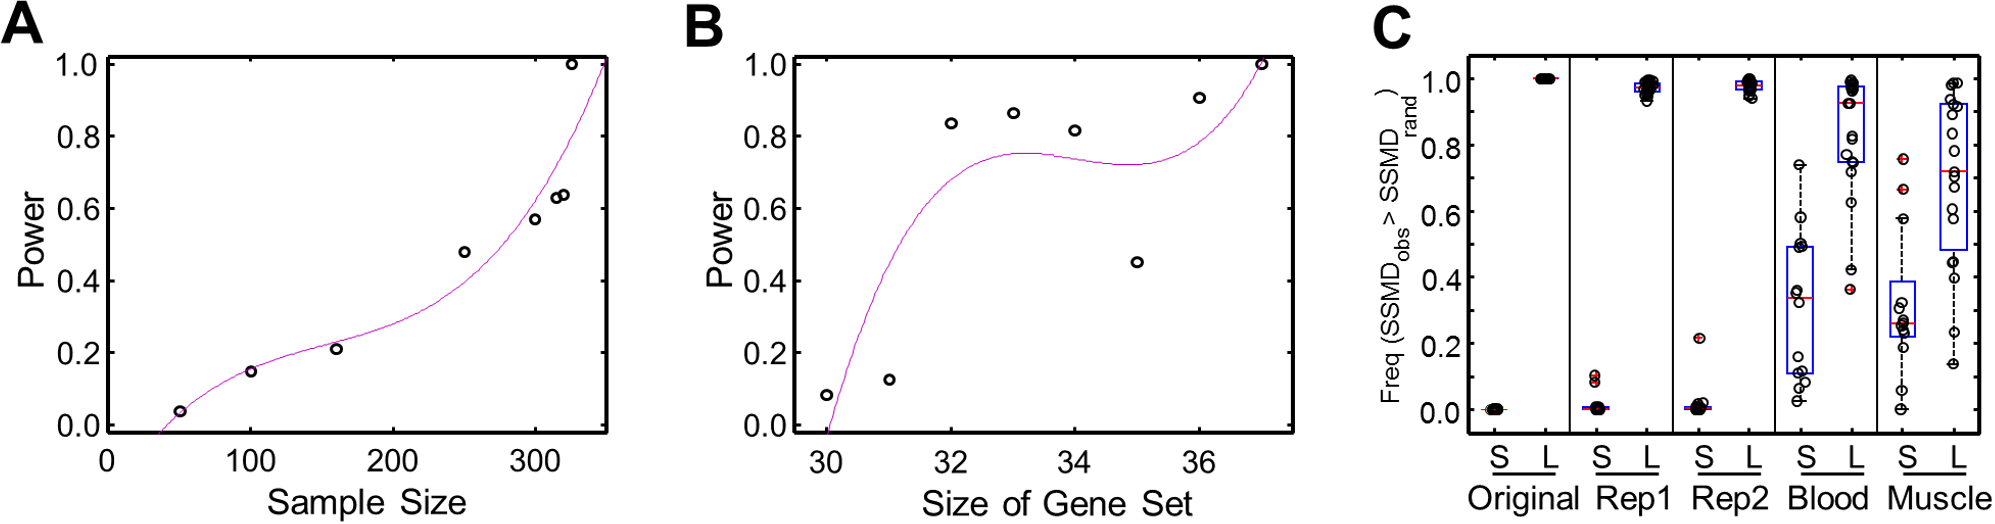 Power of SSMD test and validation of significant L- and S-SSMD gene sets.